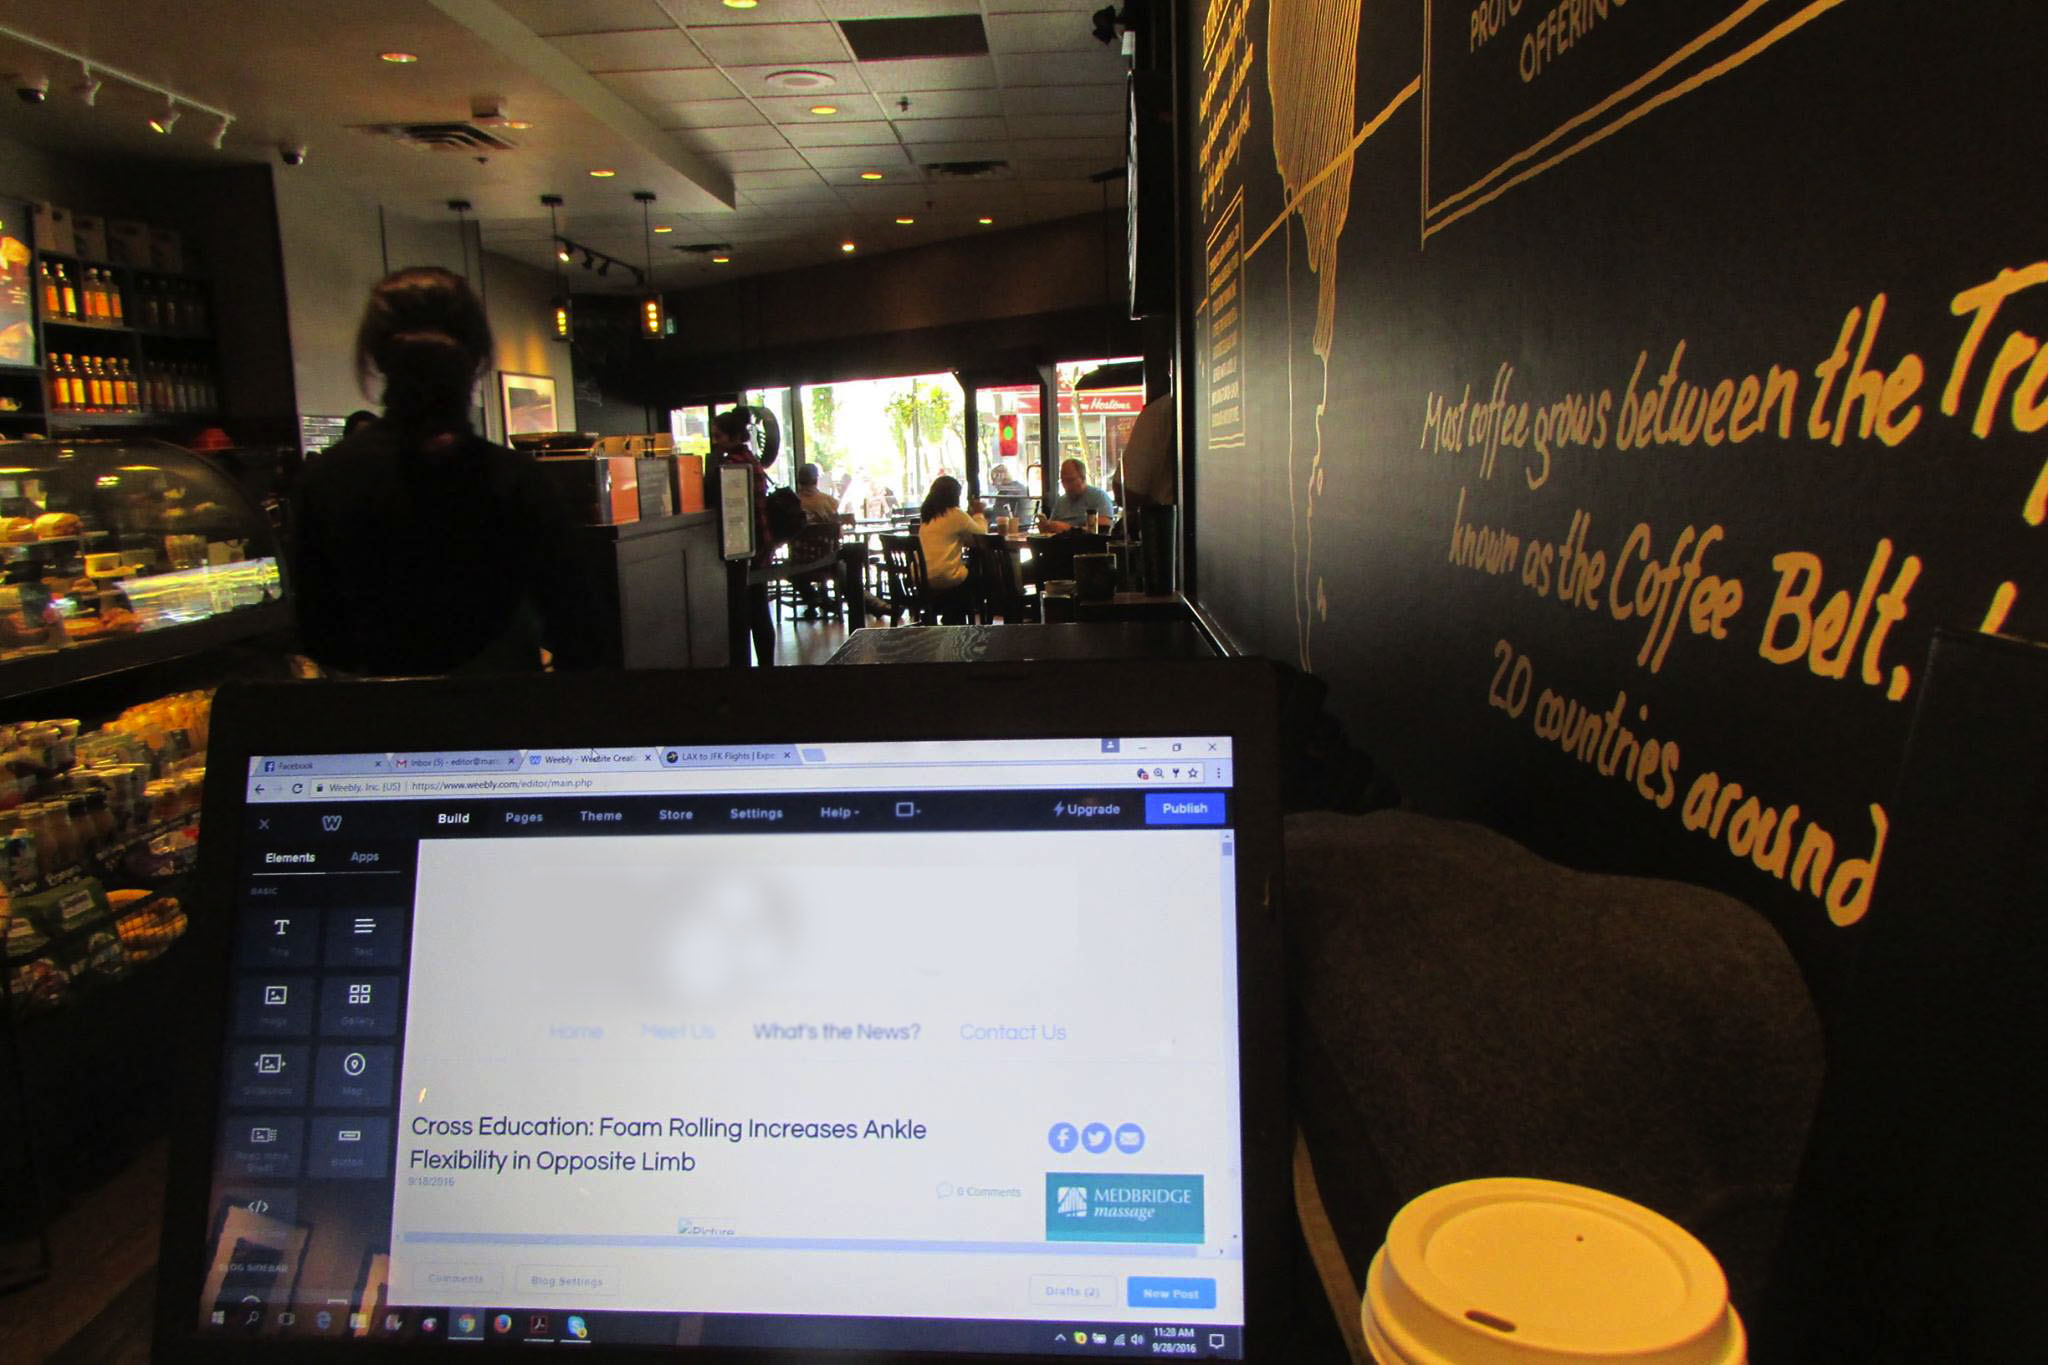 remote working at Starbucks on laptop